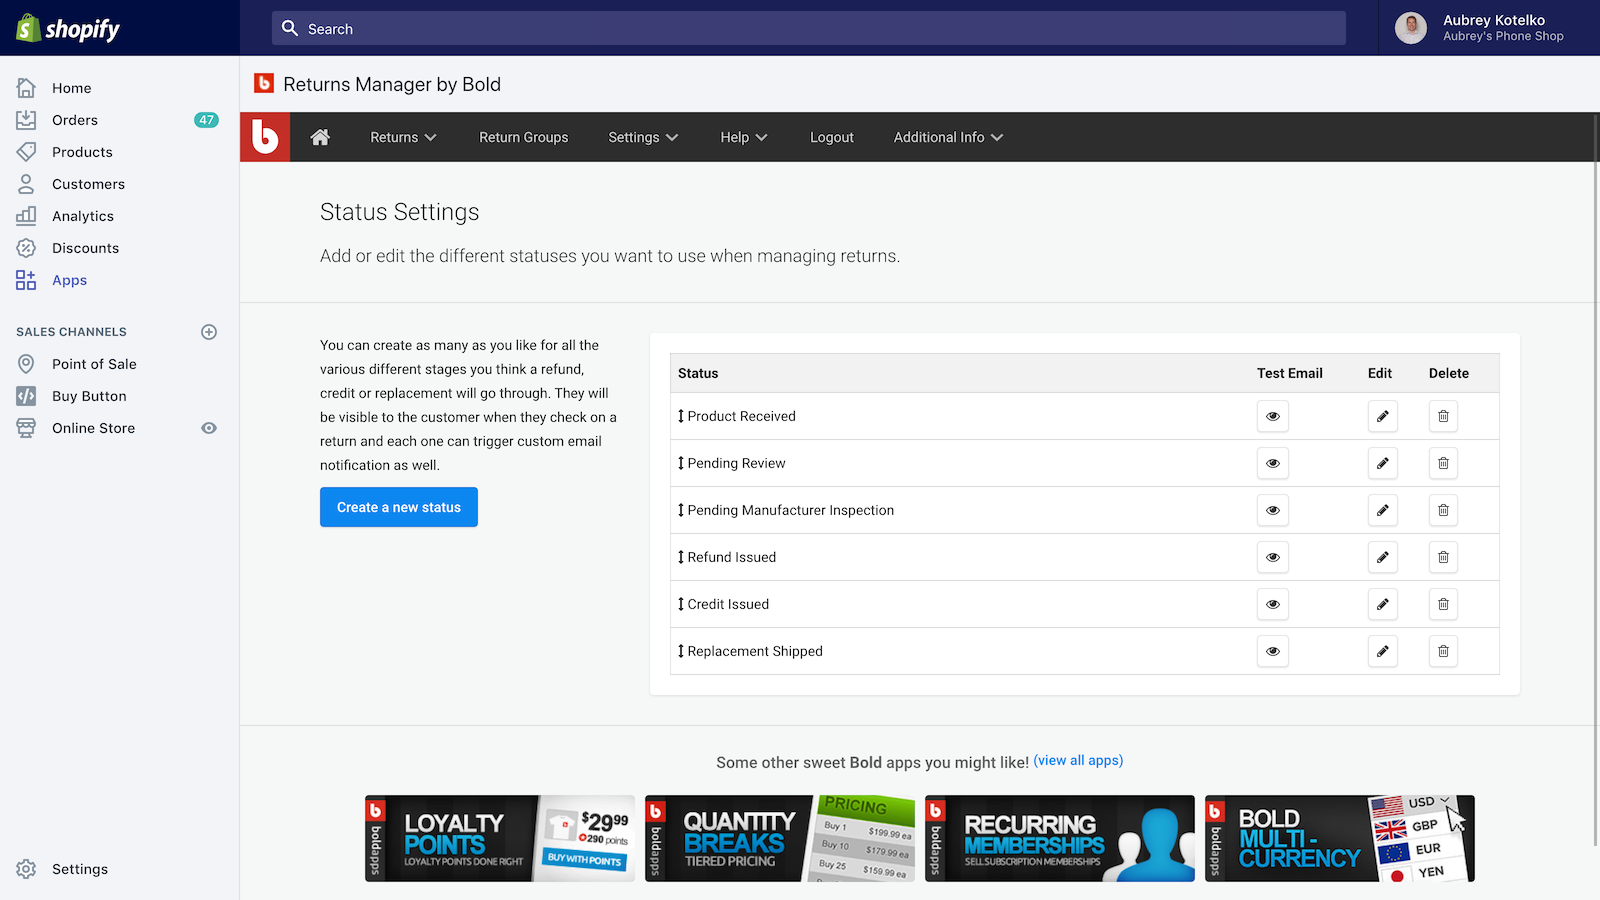 Configure custom statuses to keep track of your return requests